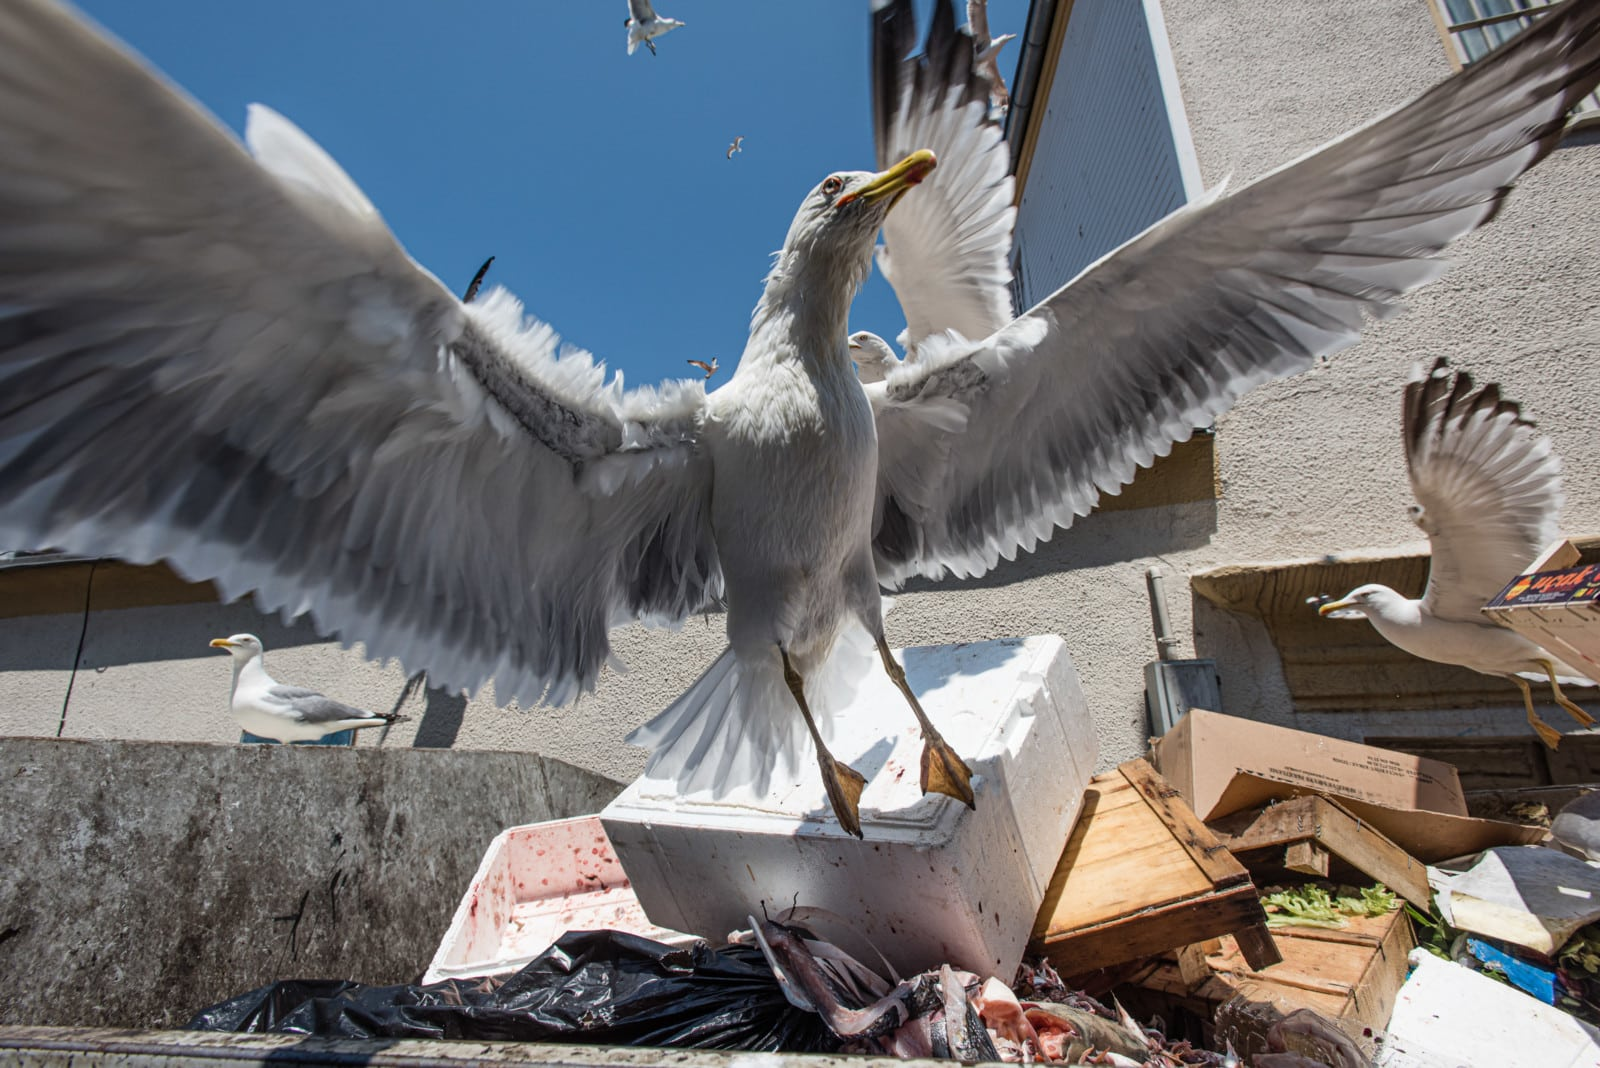 seagul-istanbul-turkey-london-freelance-photographer-richard-isaac-3200